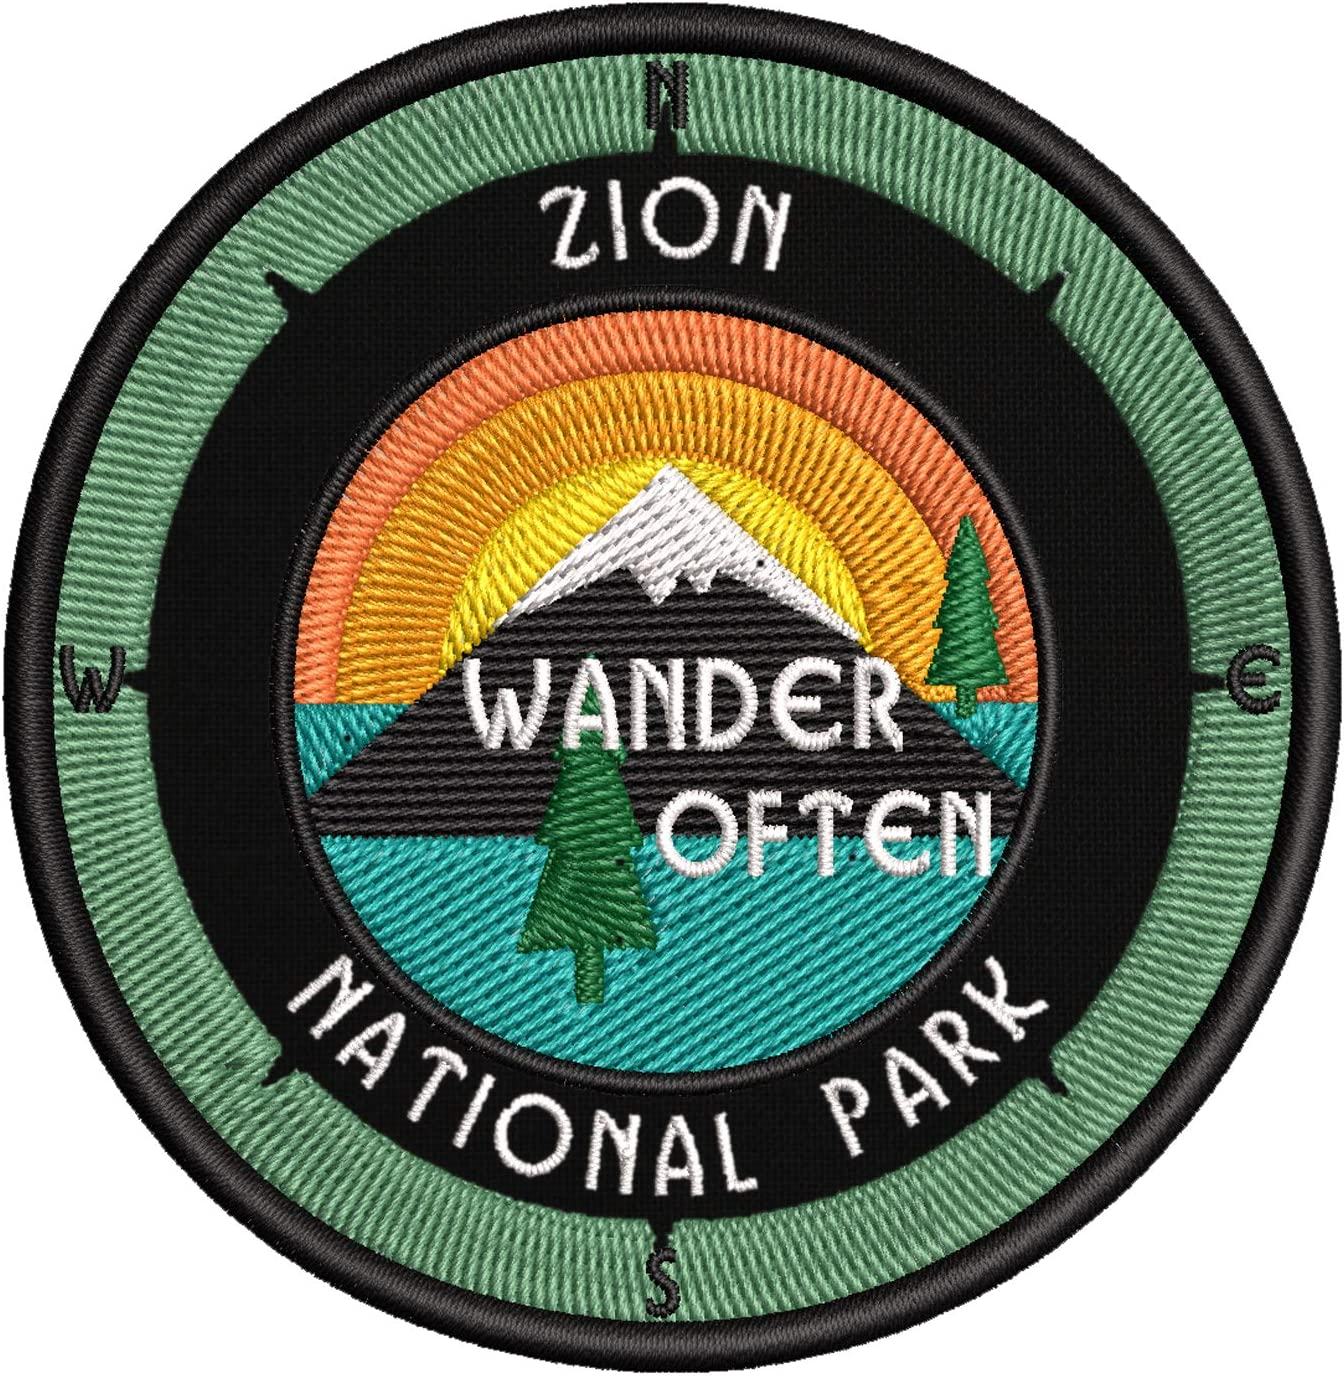 Sale Zion National Park - Wander Boston Mall Often Embroidered Patch I 3.5